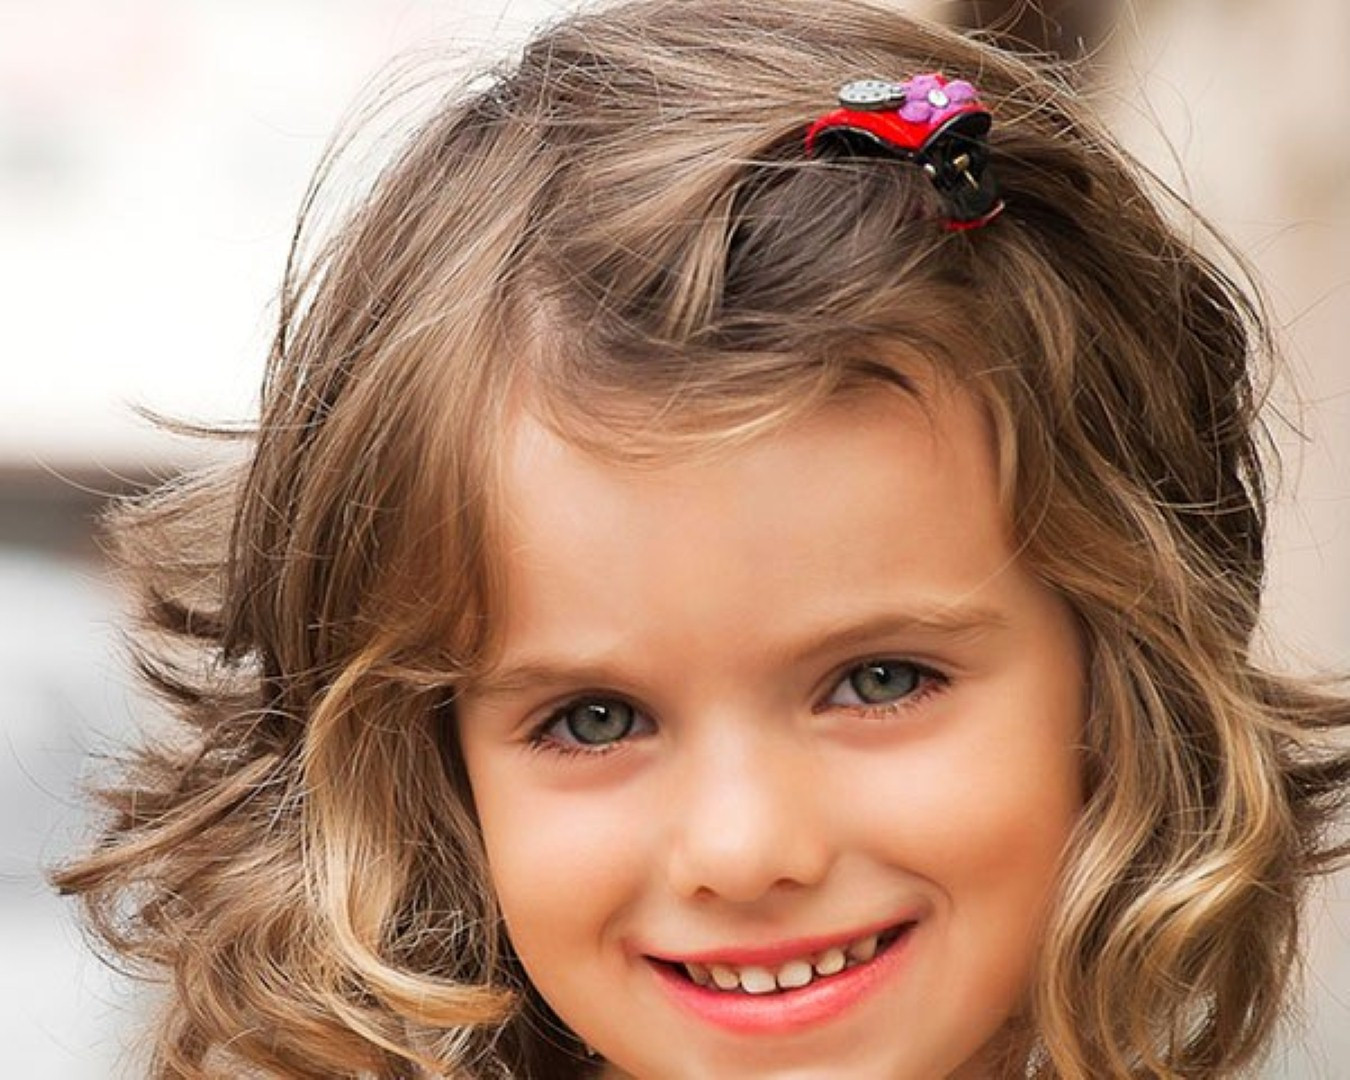 Best ideas about Haircuts For Kids Girls . Save or Pin Latest Wedding Hairstyles For Little Kids Girls Now.